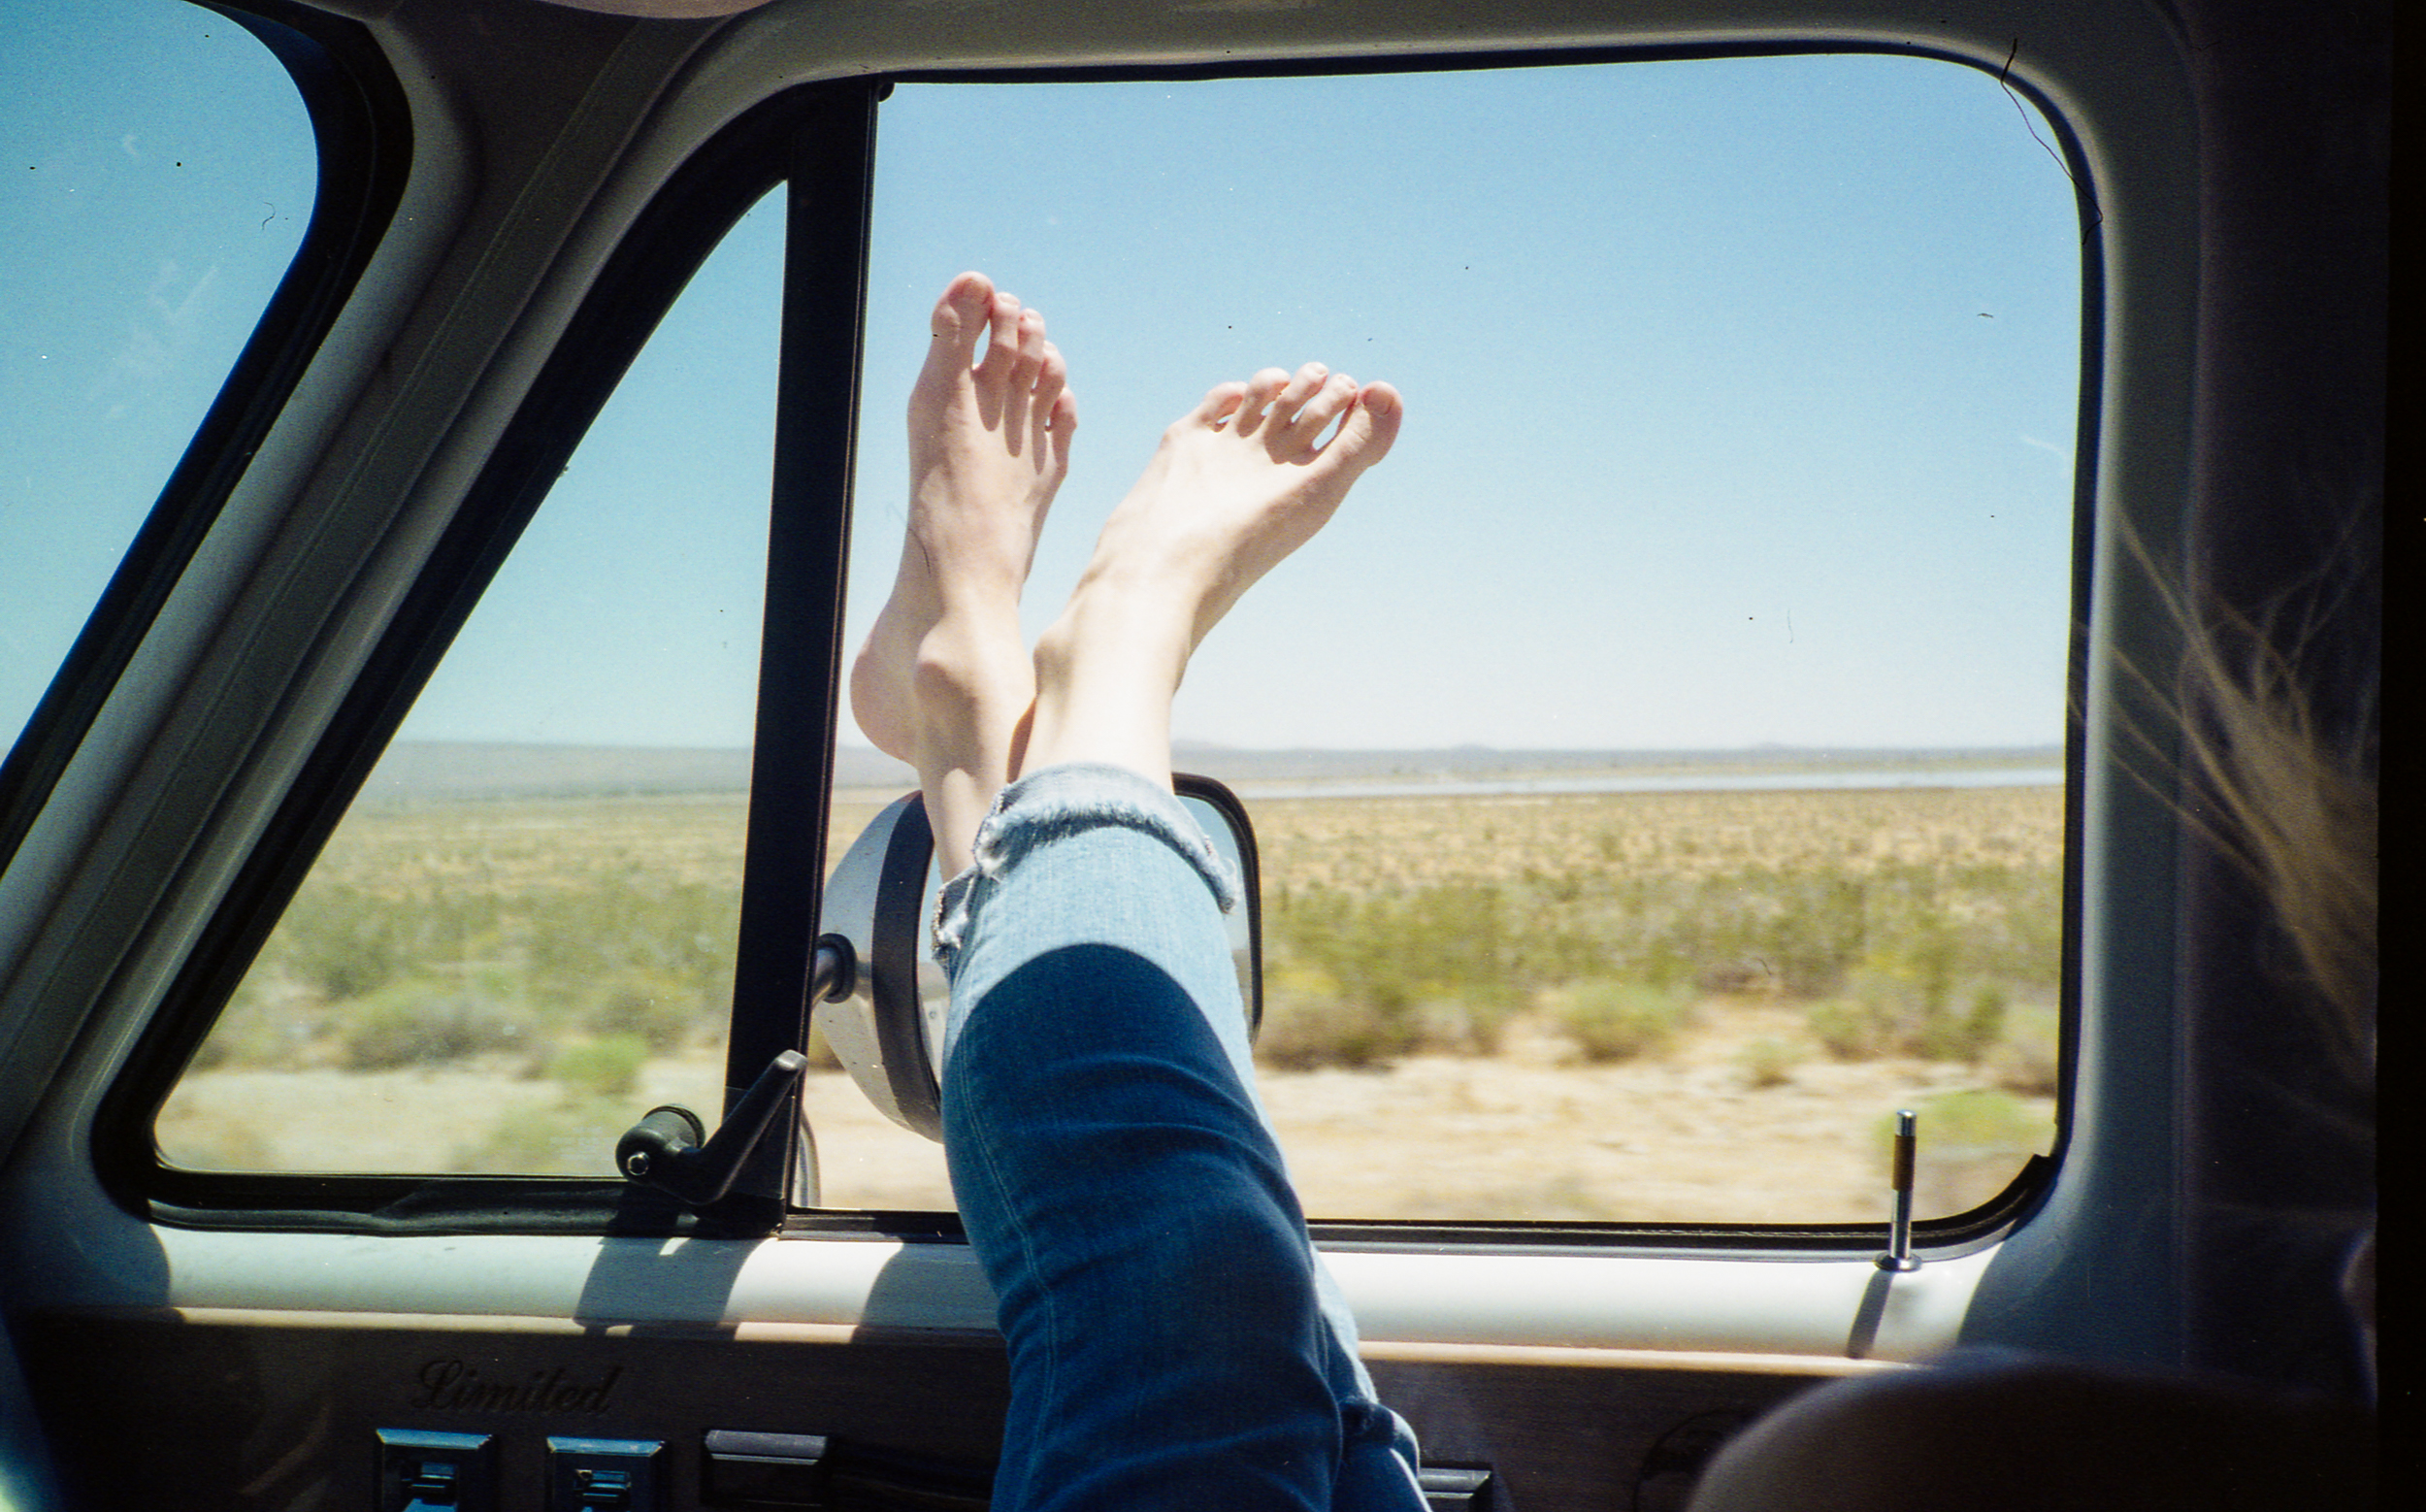 Driving through the mojave in the middle of summer, with no A/C...